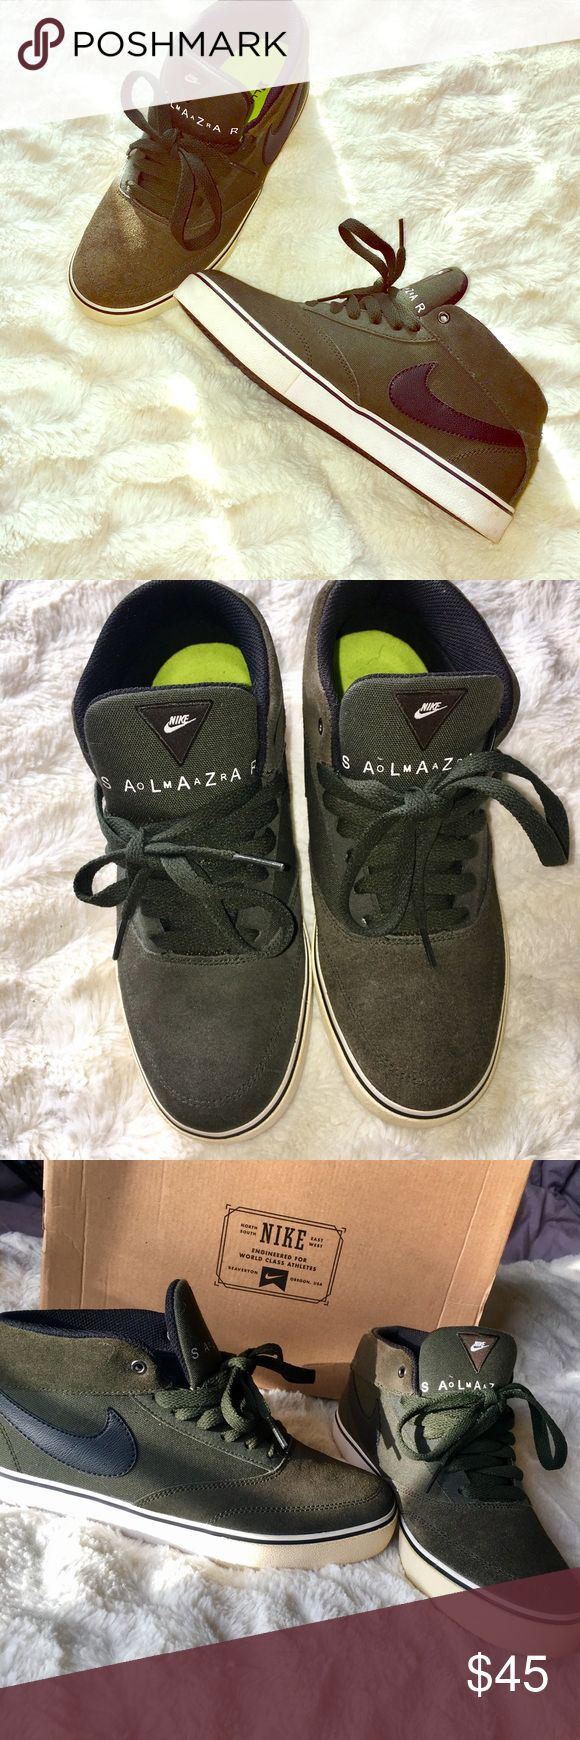 Nike Omar Salazar LR Olive Green Sneakers Super dope sneakers. Great for fall. Unisex. Men's size 7 but equals women's size 9! Great condition, only worn twice. Nike Shoes Sneakers